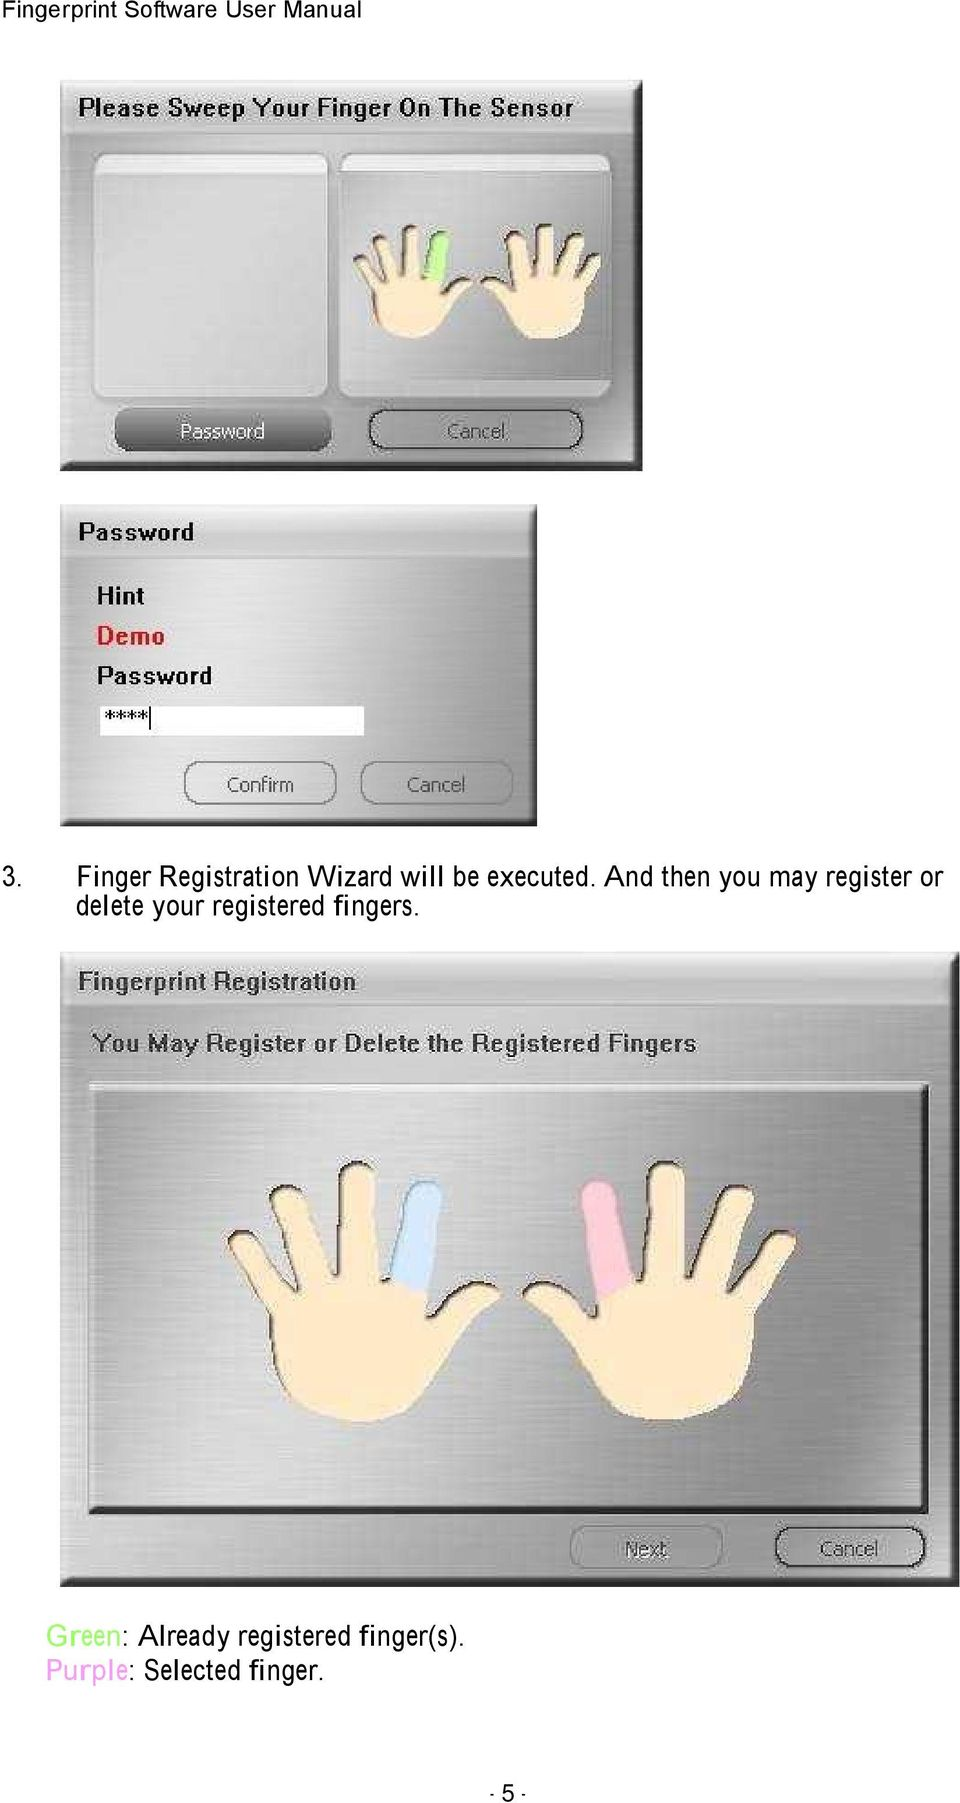 And then you may register or delete your